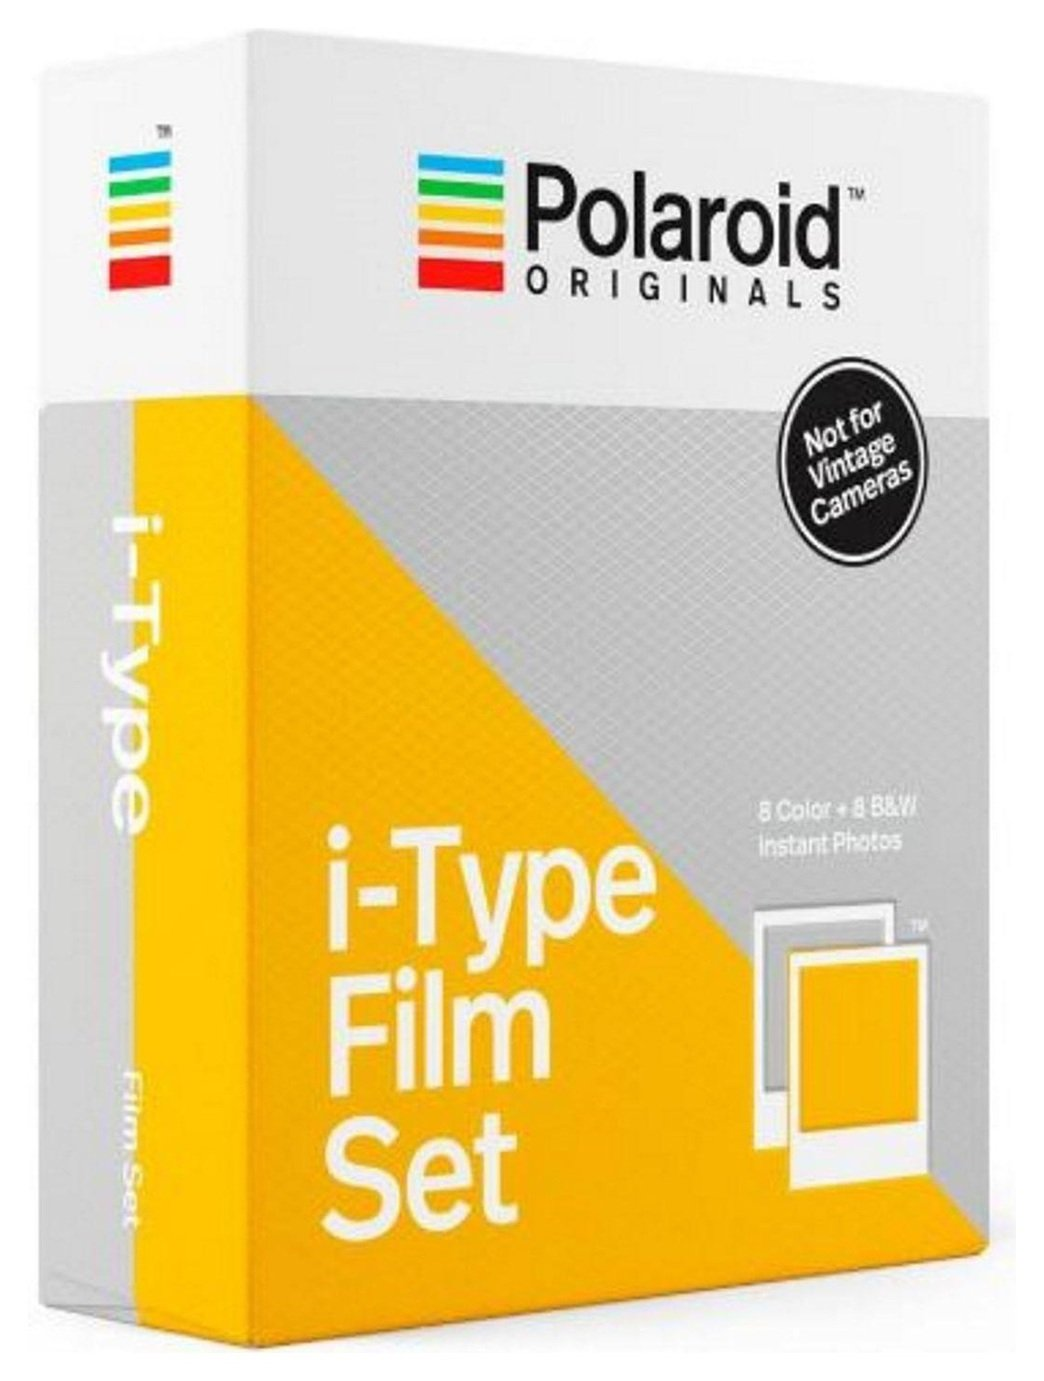 Polaroid Originals Instant Film - Pack of 16 from Polaroid Originals